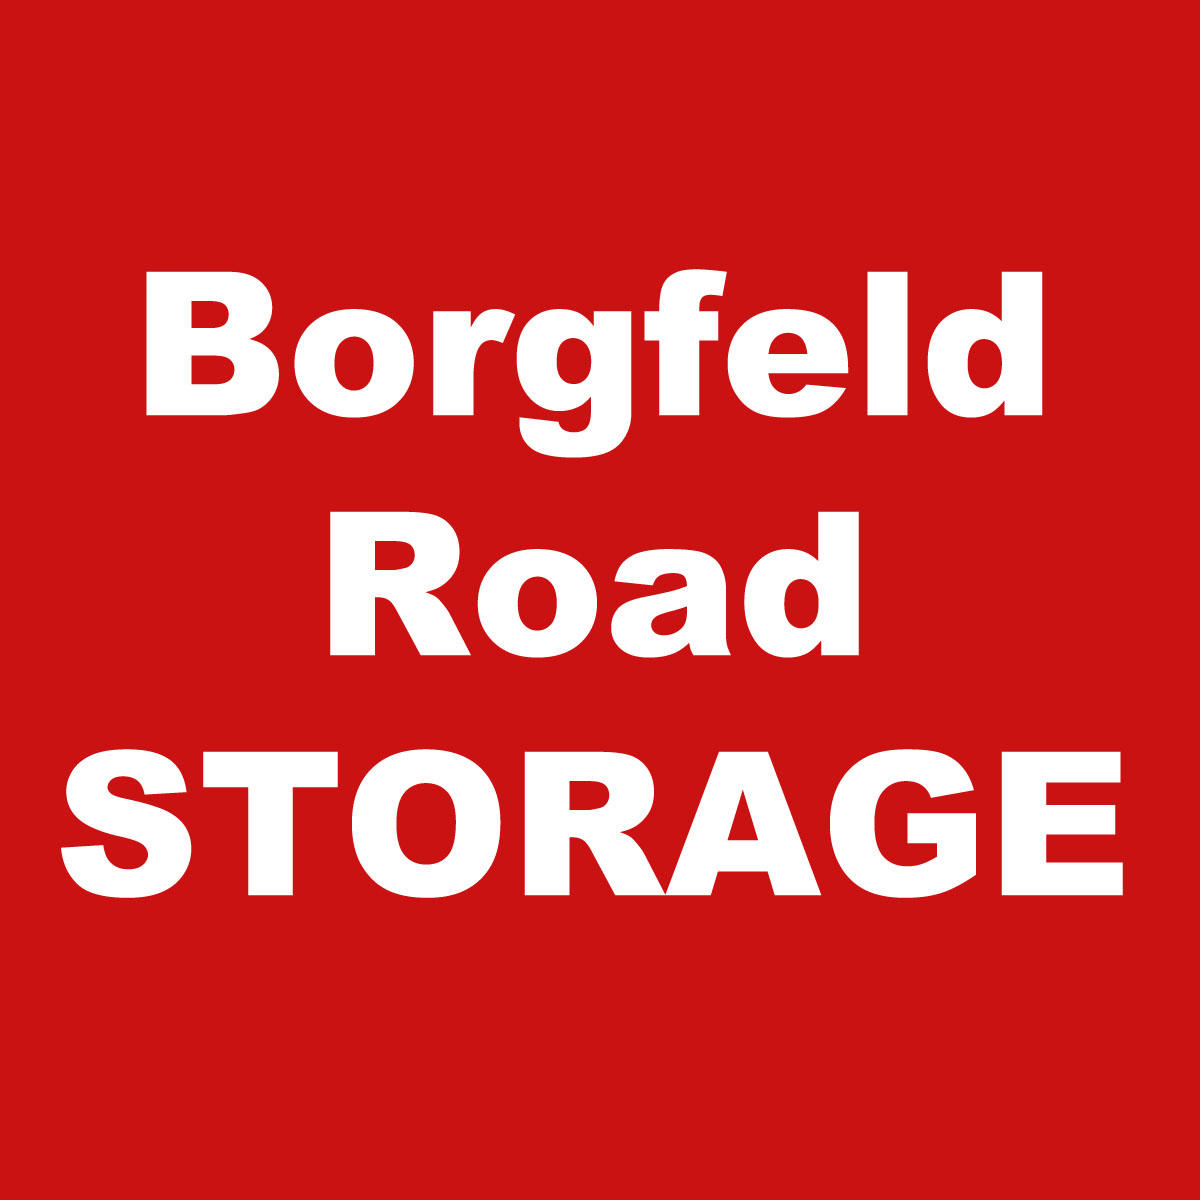 Borgfeld Road Storage